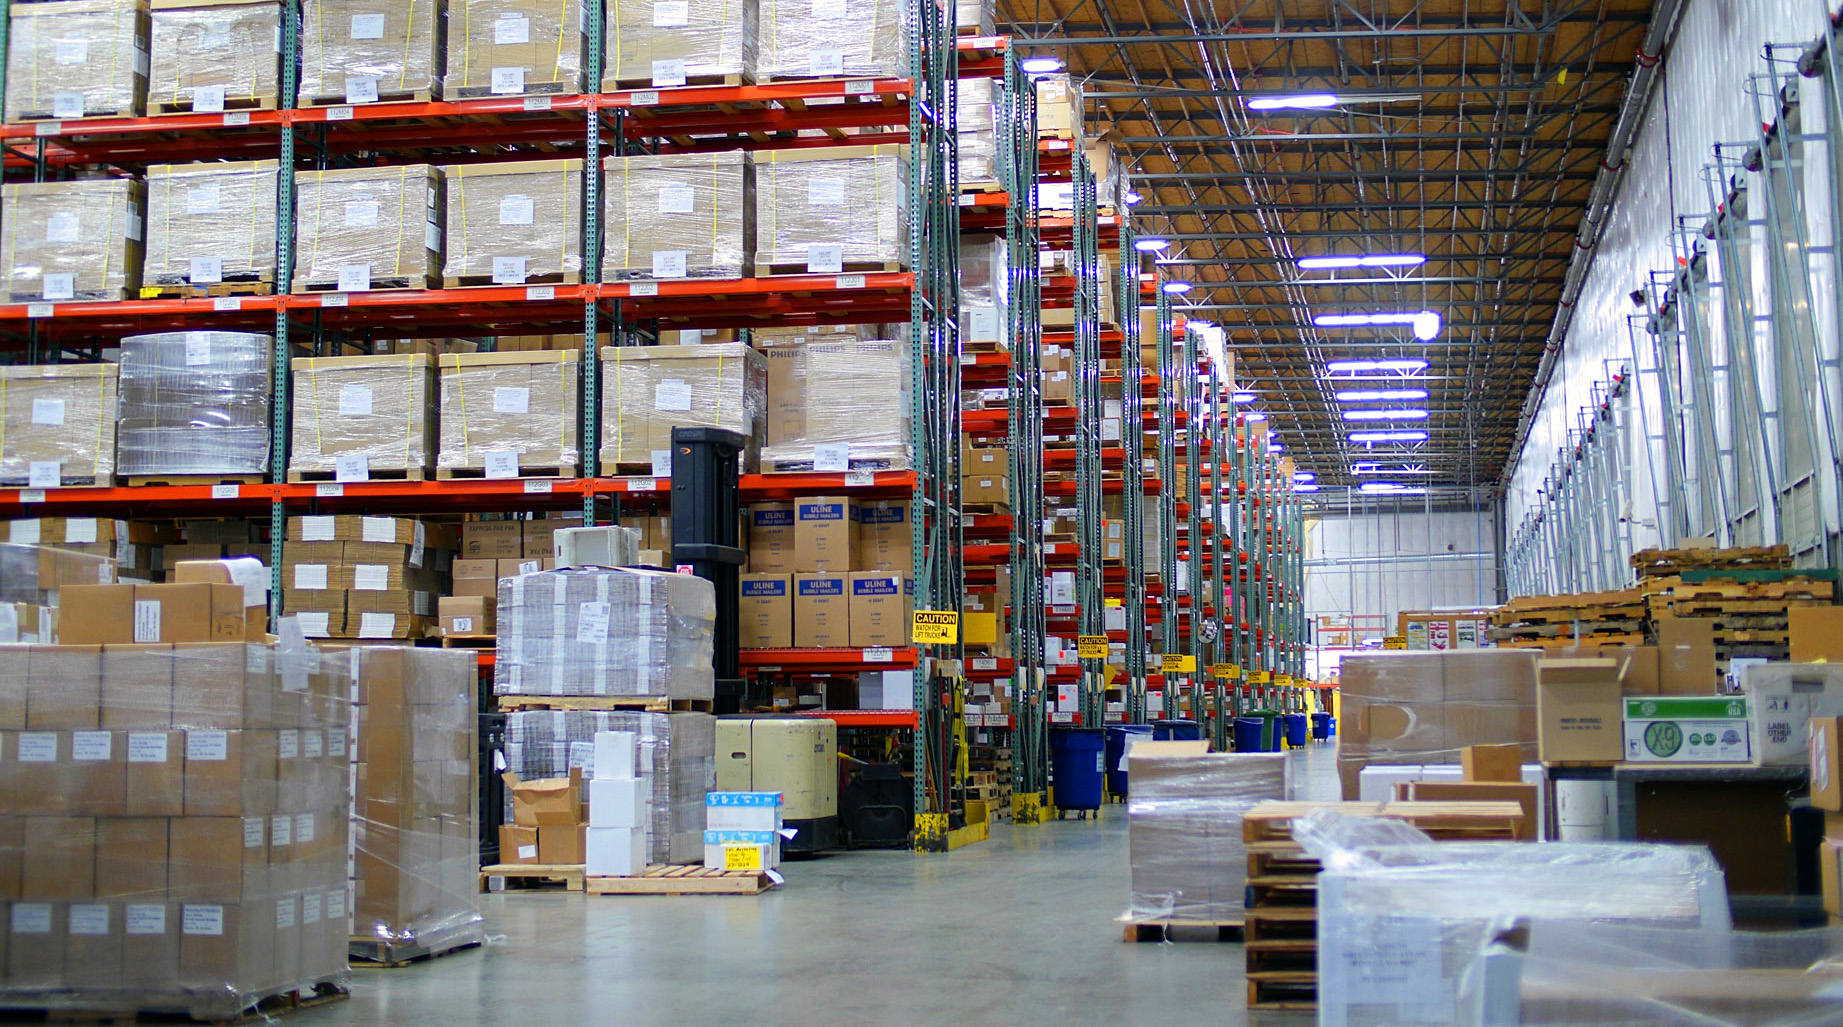 Kaye-Smith Warehouse Boxes Packages Shelves Racks